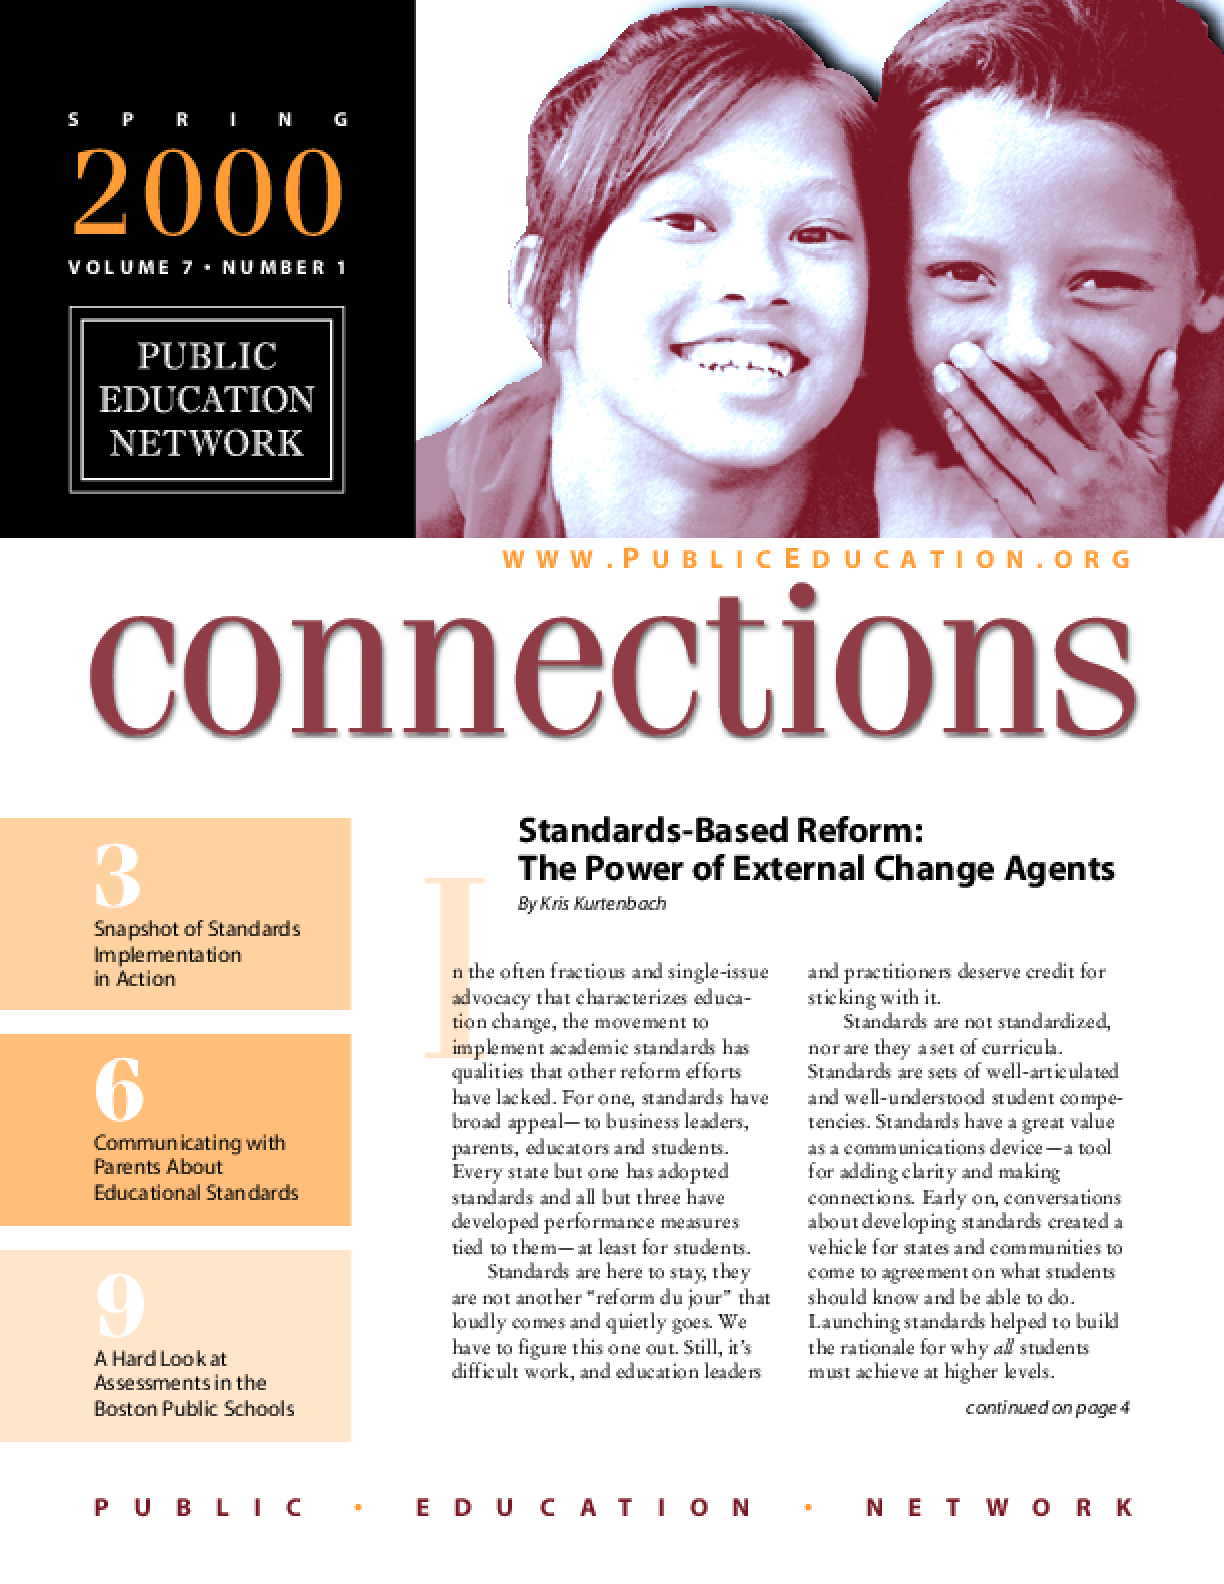 Connections: A Journal of Public Education Advocacy - Spring 2000, Vol. 7, No. 1